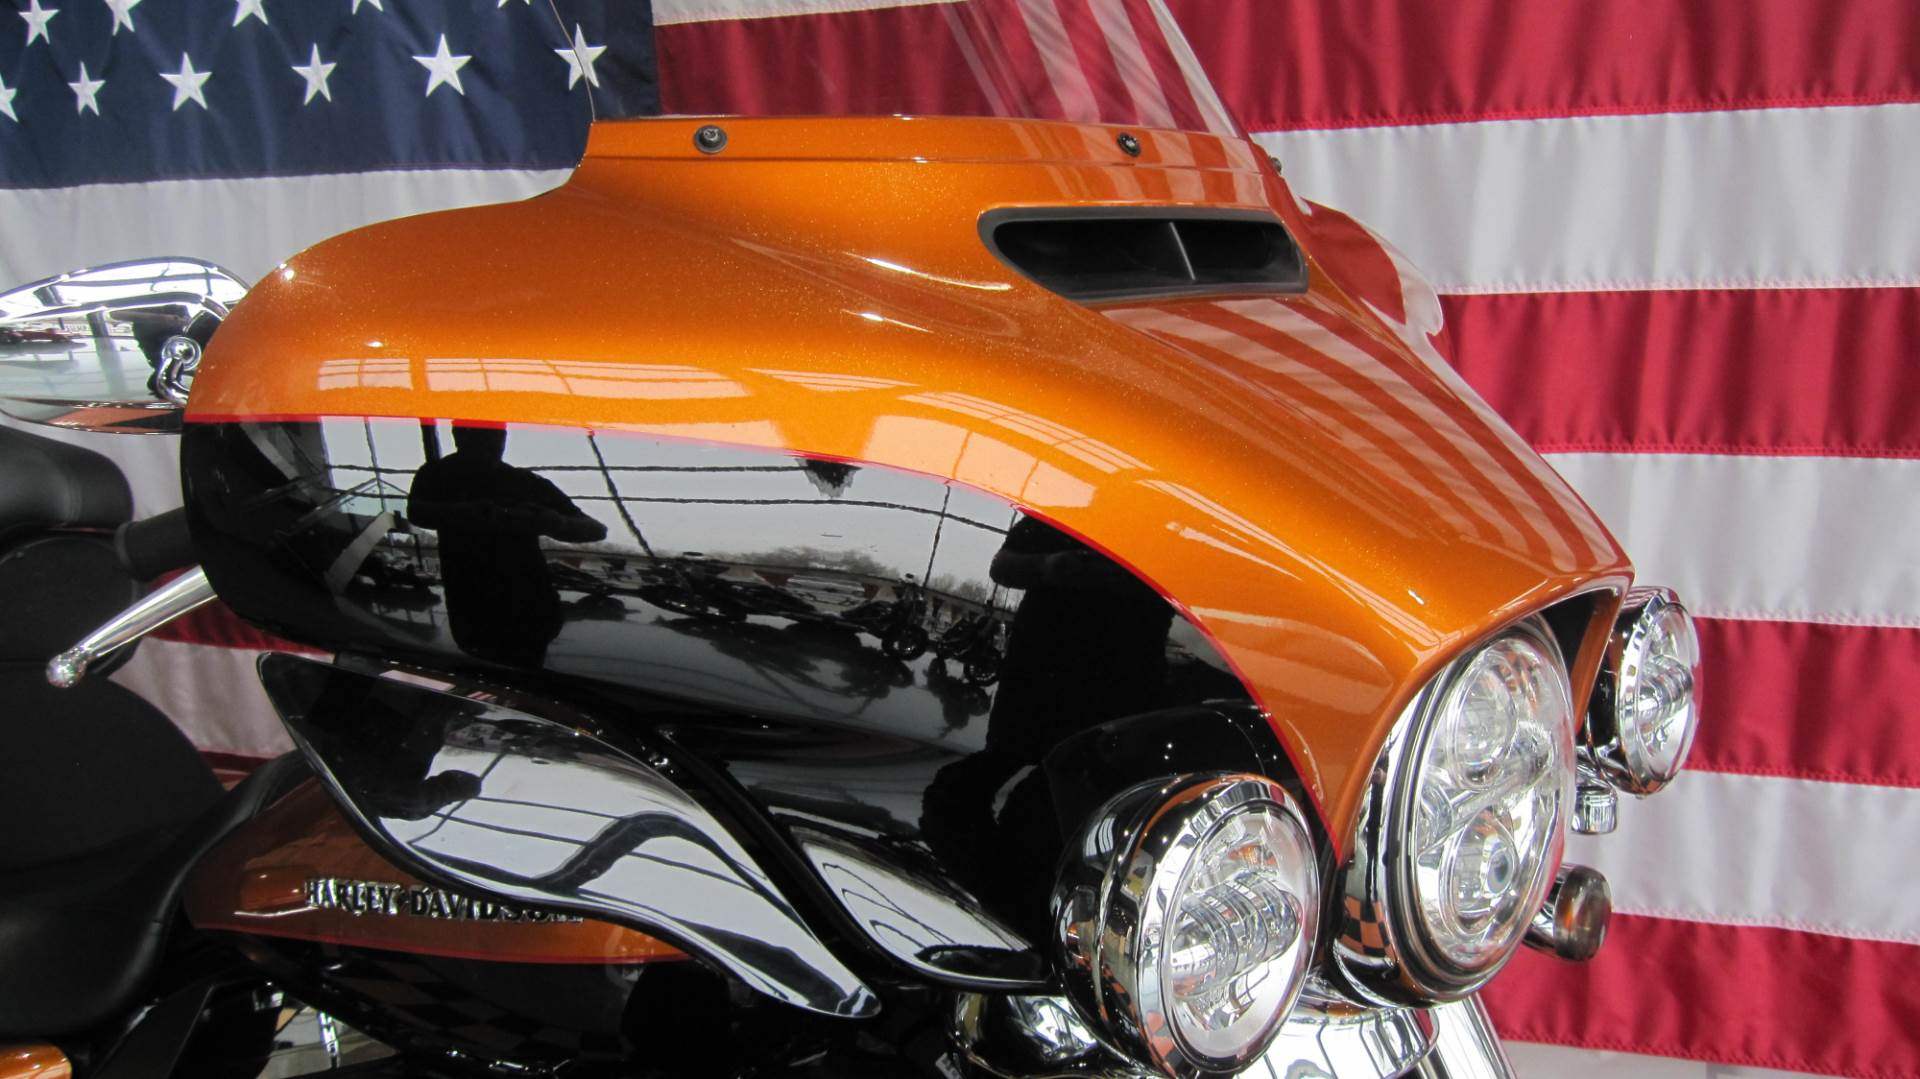 Conrads Harley Davidson >> Used 2015 Harley-Davidson Ultra Limited Low Motorcycles in Shorewood, IL   Stock Number: 636778U